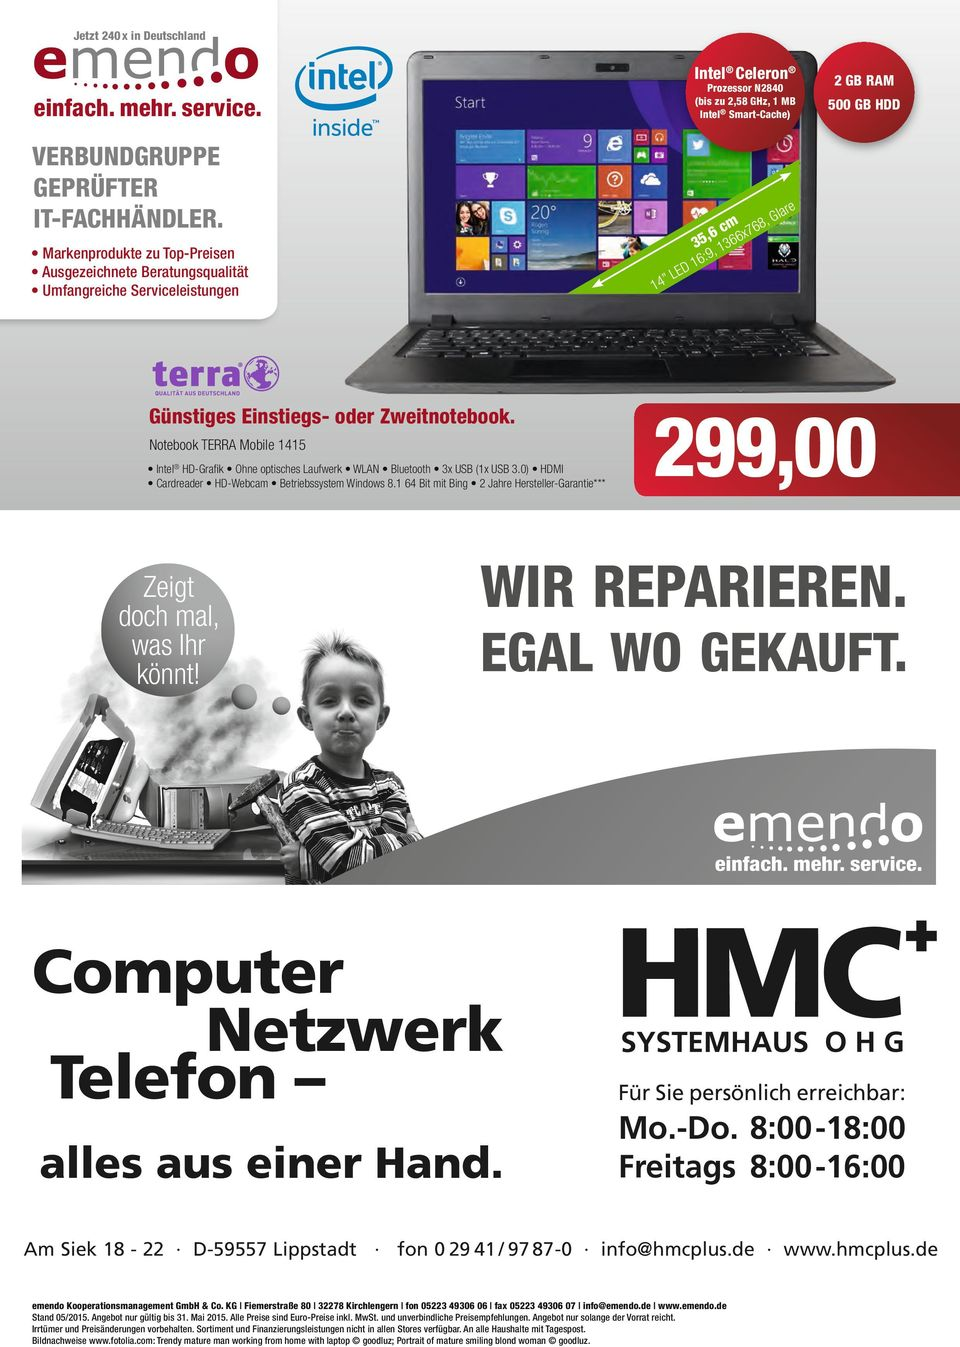 Notebook TERRA Mobile 4 Intel HD-Grafik Ohne optisches Laufwerk WLAN Bluetooth 3x USB (x USB 3.0) HDMI Cardreader HD-Webca Betriebssyste Windows 8.